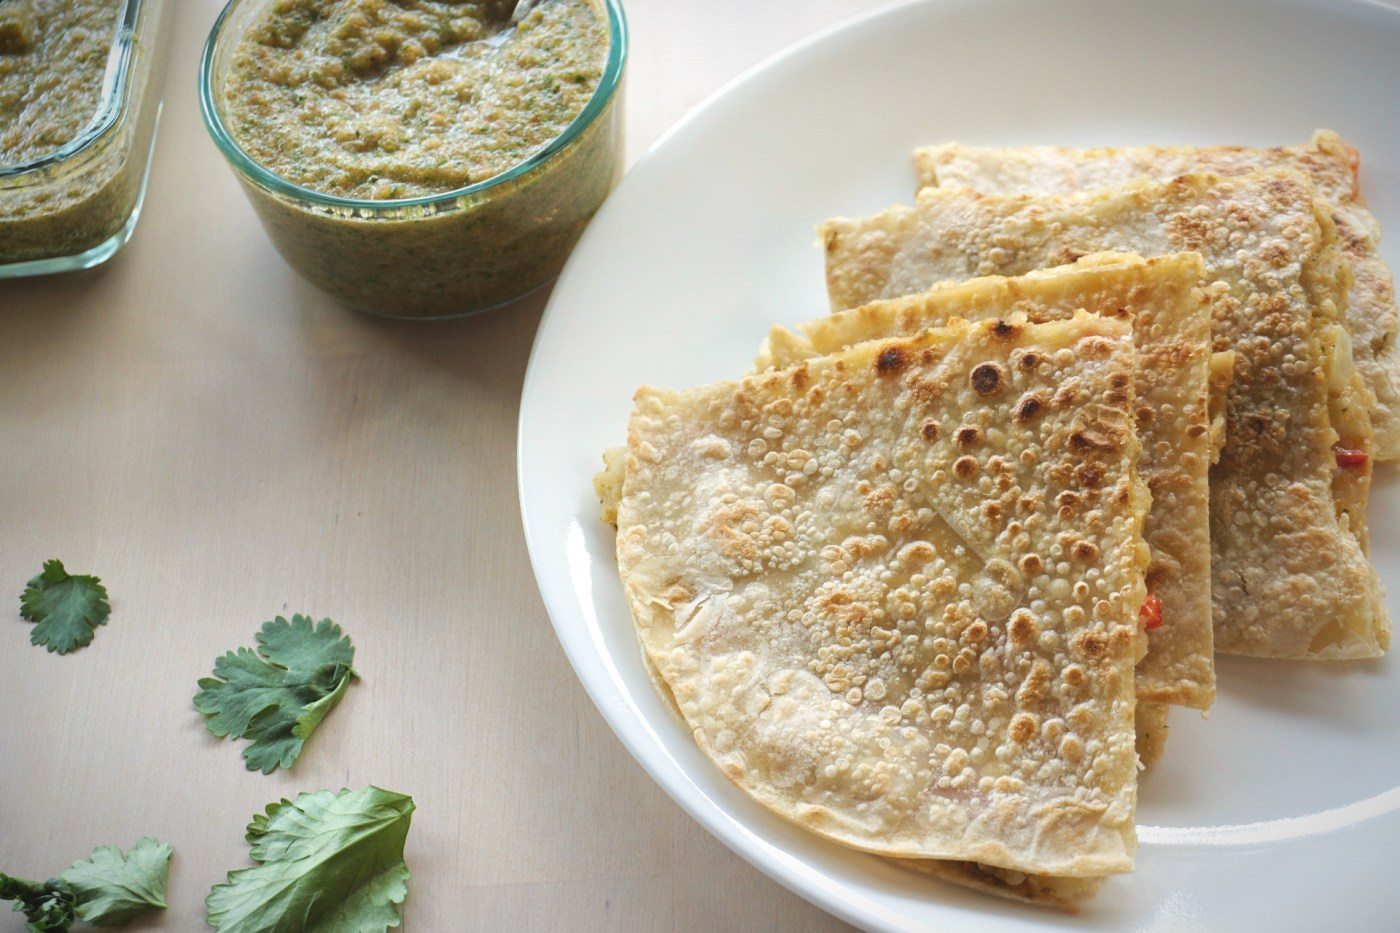 Mashed Potatoes Quesadilla on plate with chutney by side